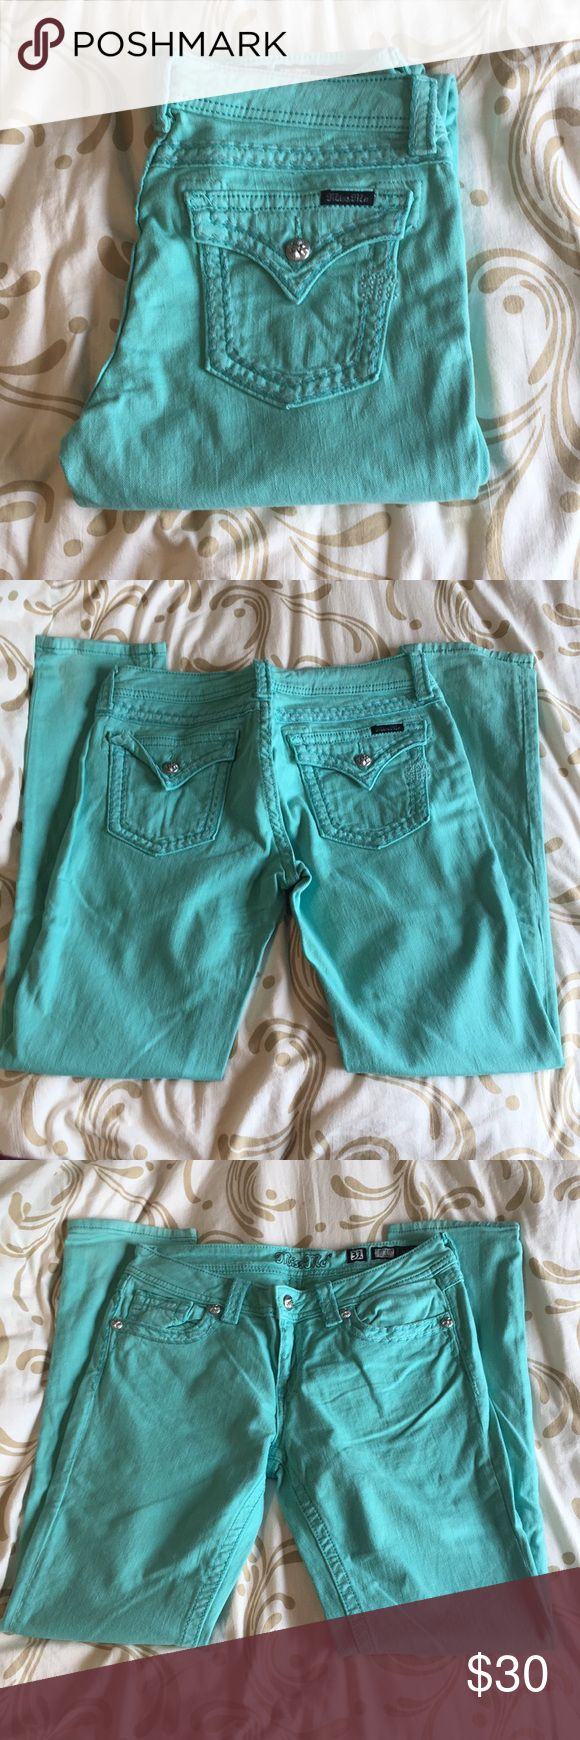 Miss Me Teal Skinny Jeans Teal, size 27,  inseam 32, make me an offer Miss Me Jeans Skinny